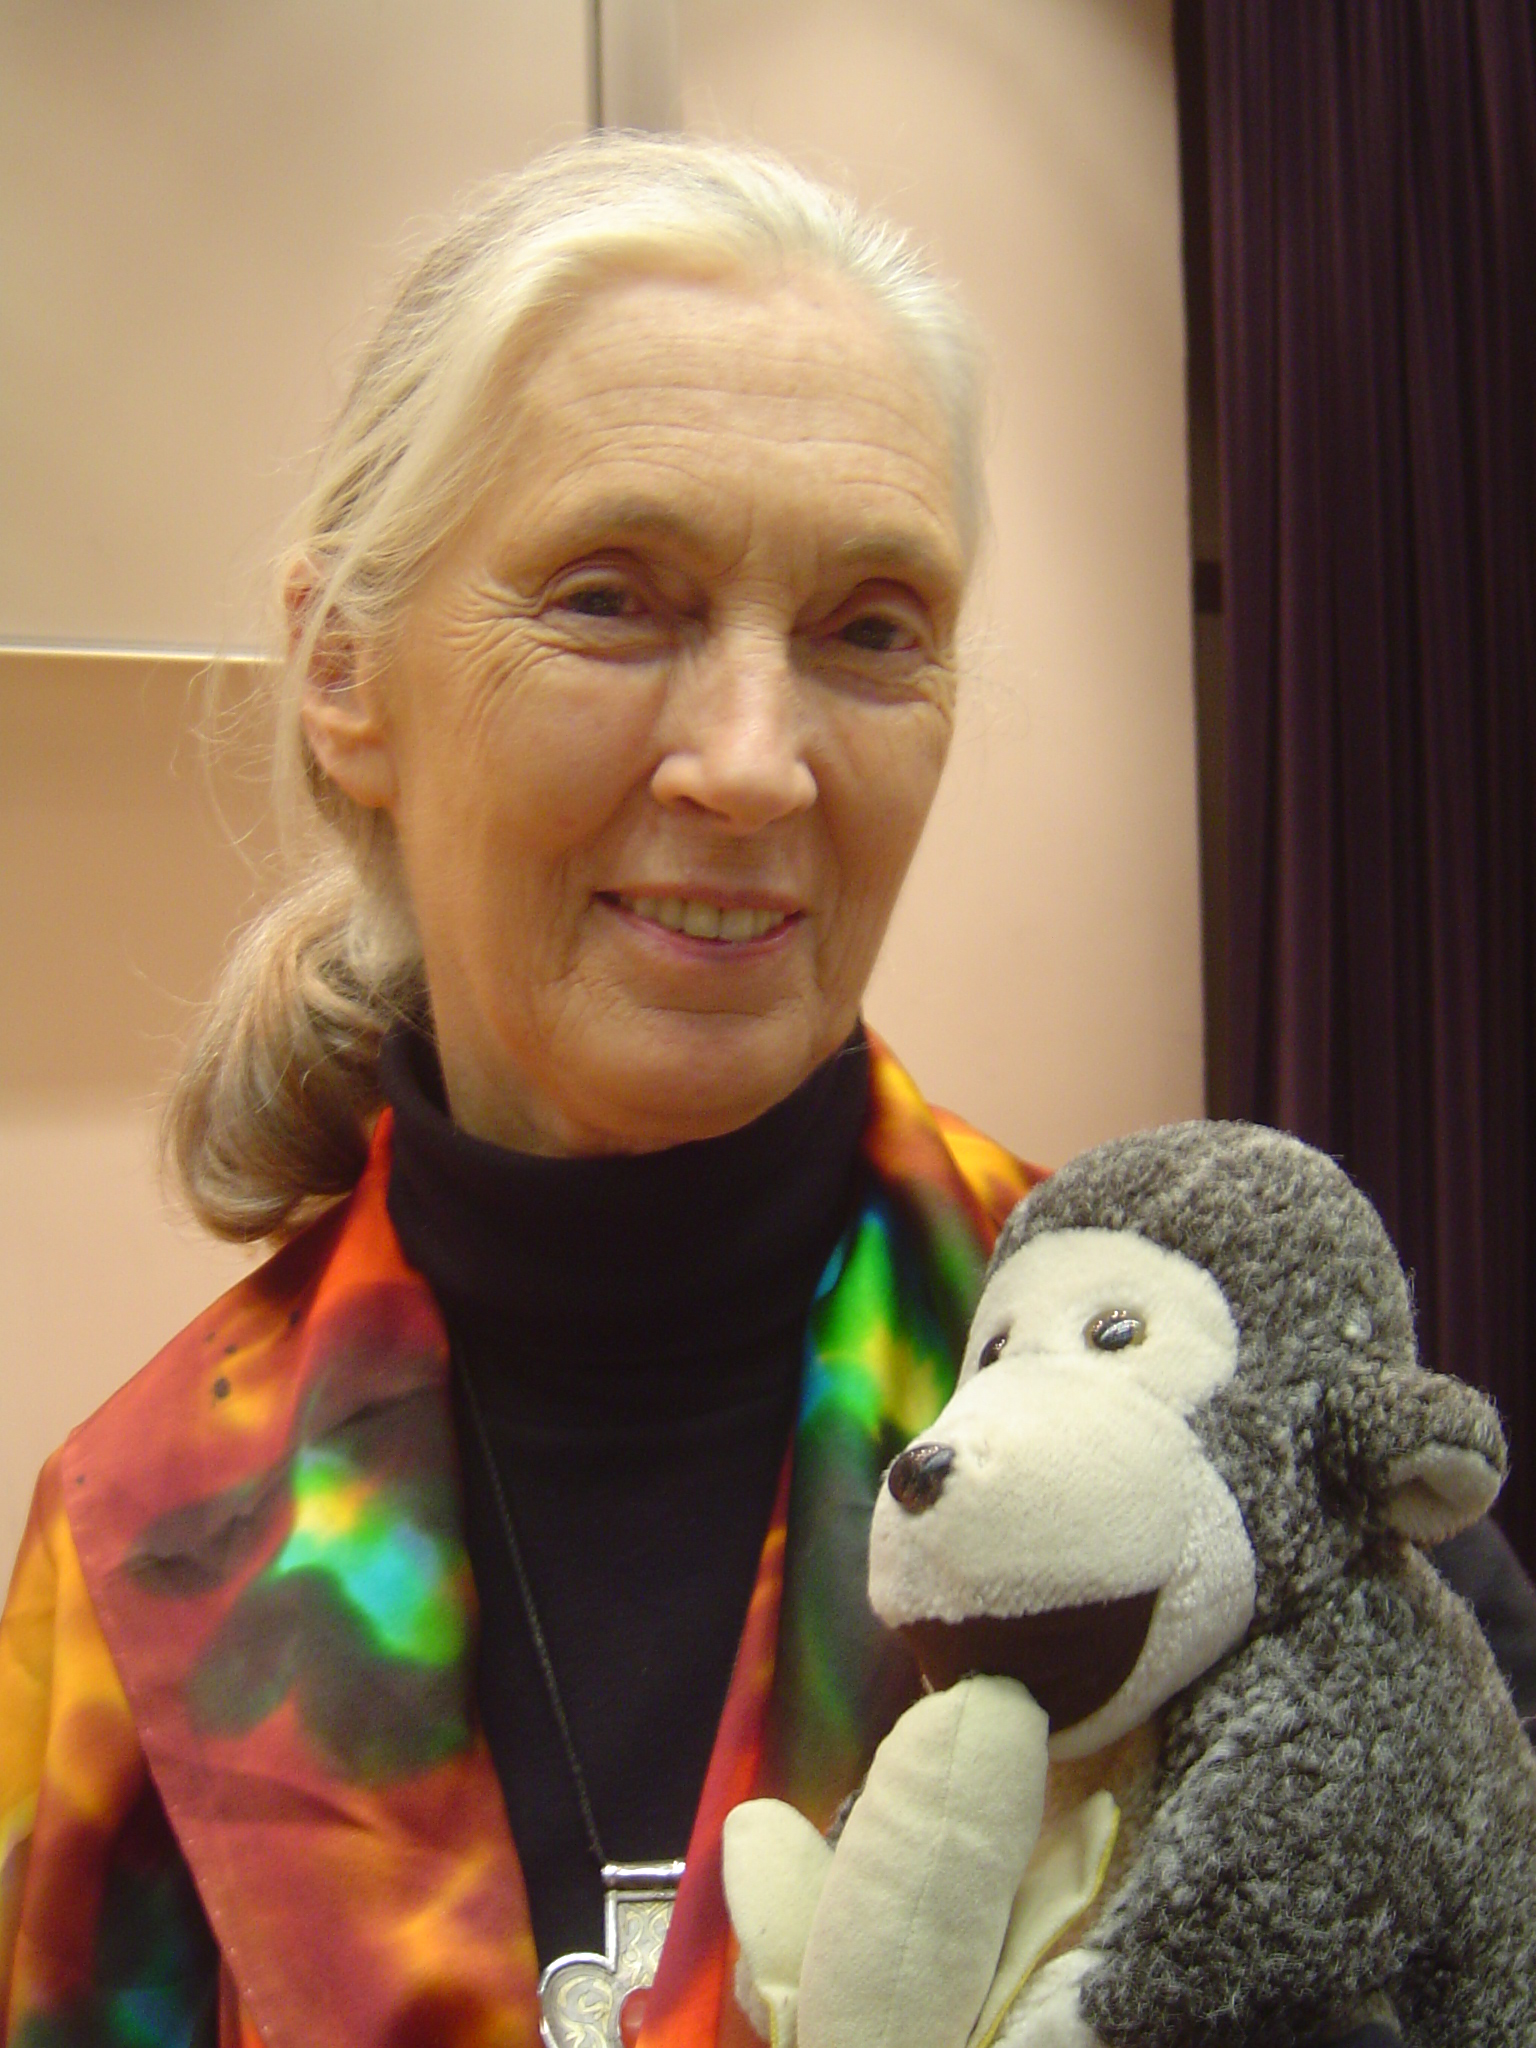 Jane Goodall A Friend to Chimpanzees